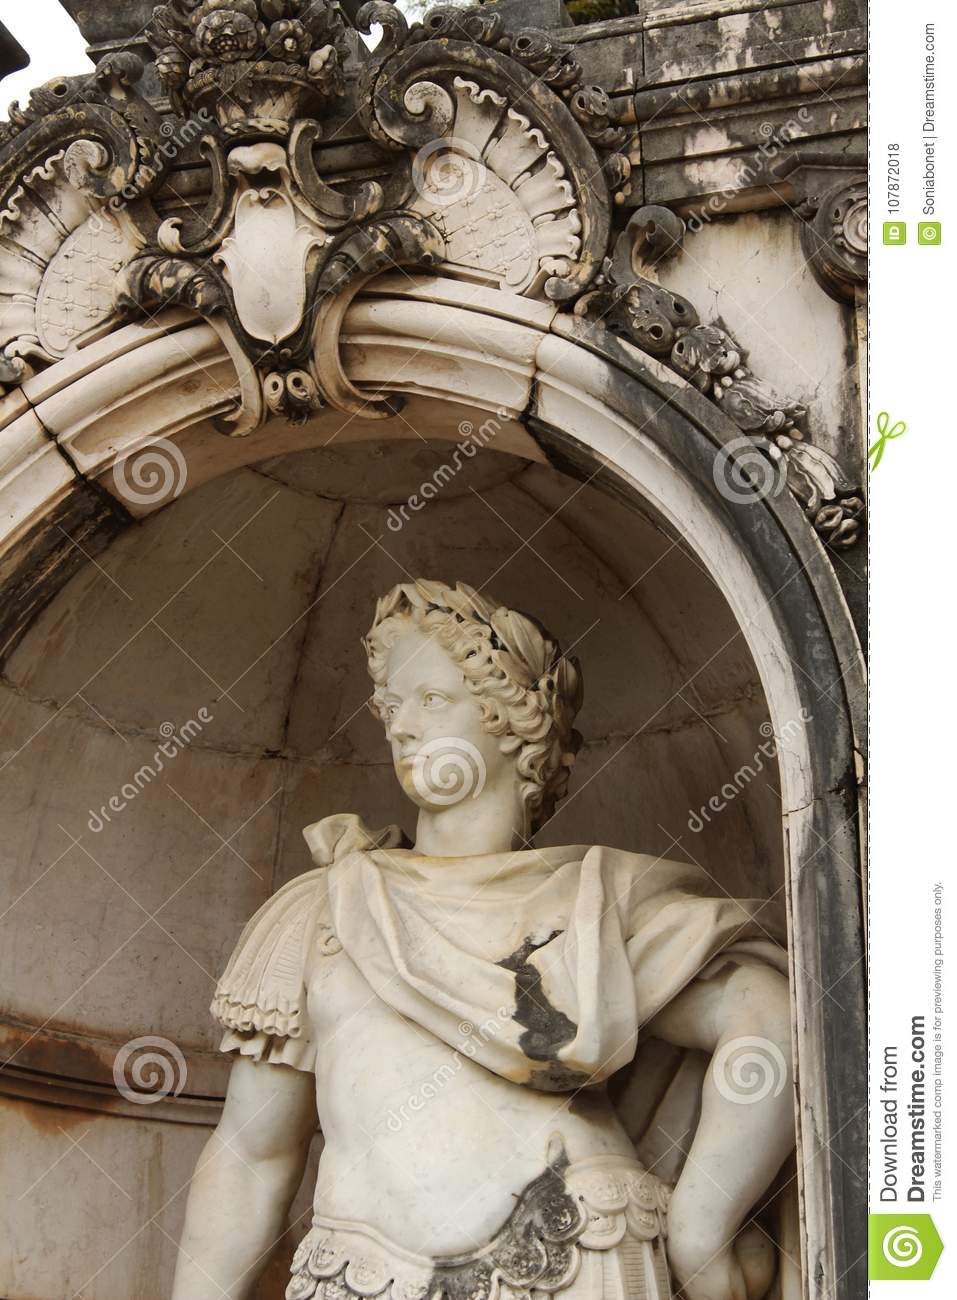 White Stone Statue In The Garden Stock Photo Image Of Antique